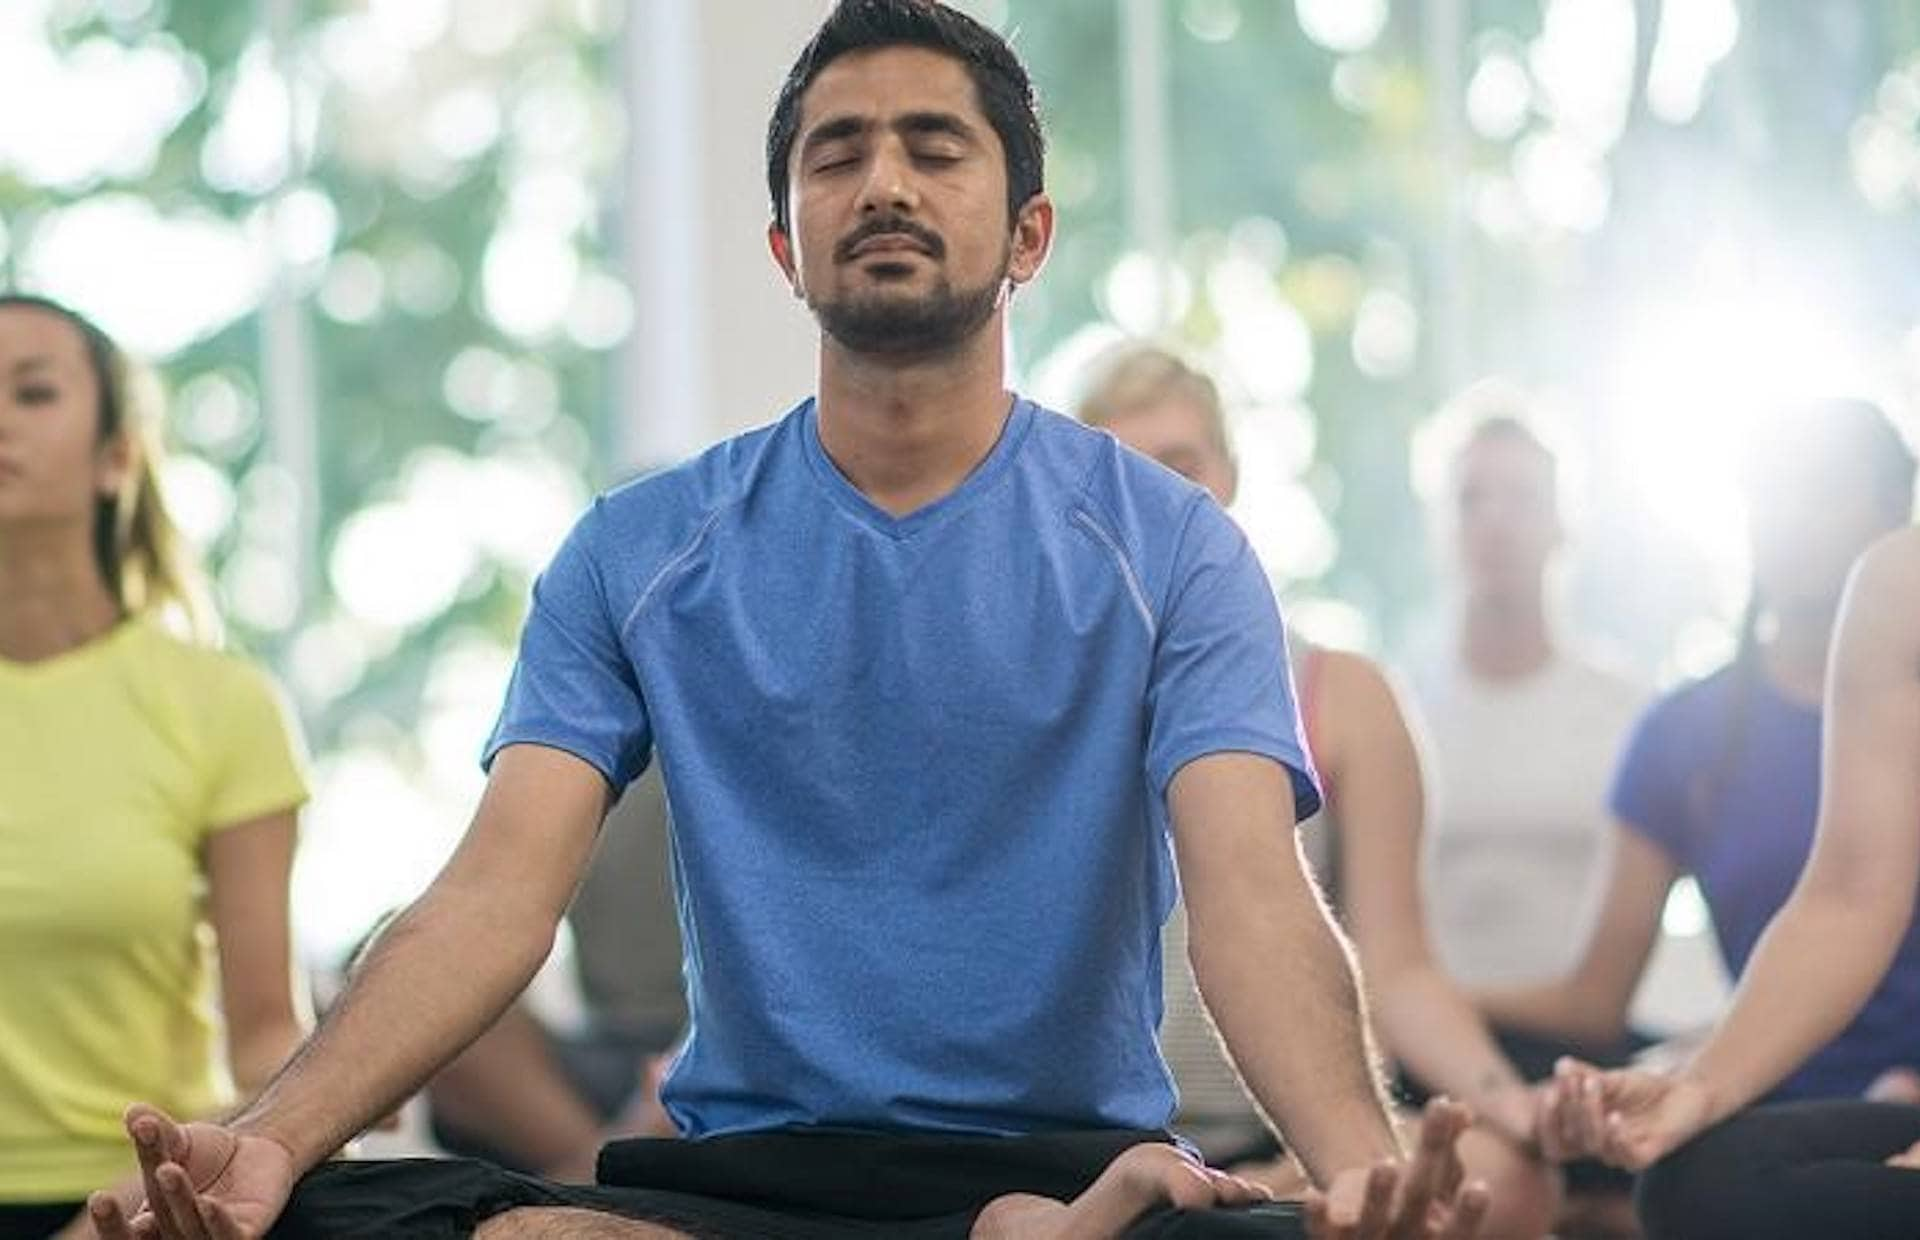 The Benefits of Meditation and Mindfulness for Men